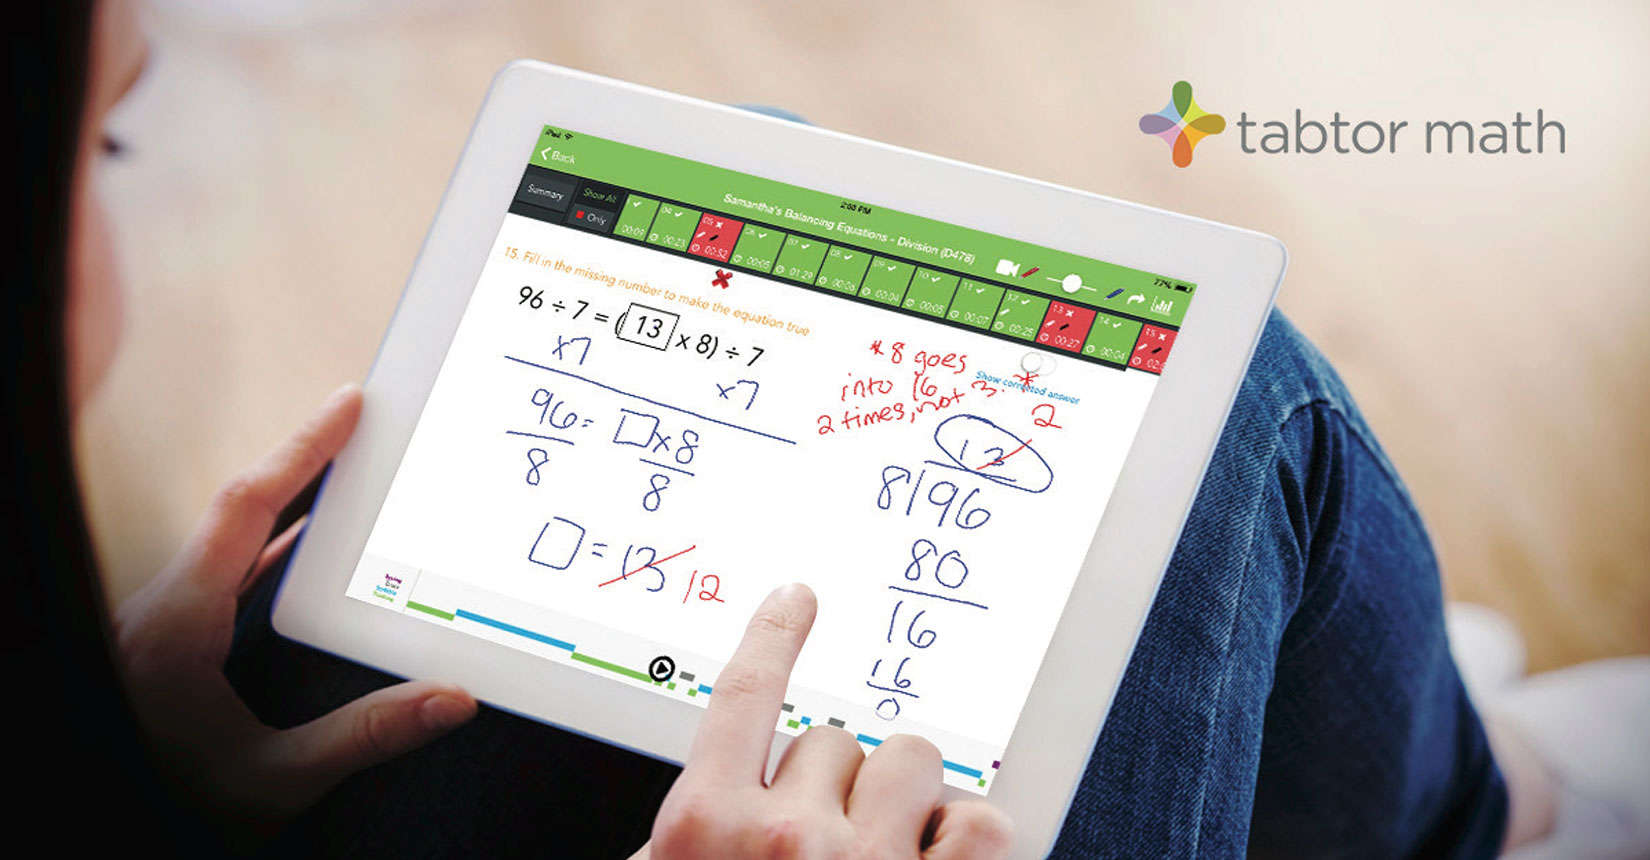 The Tabtor Math app doesn't leave you alone with your iPad. A personalized tutor is assigned to each student.